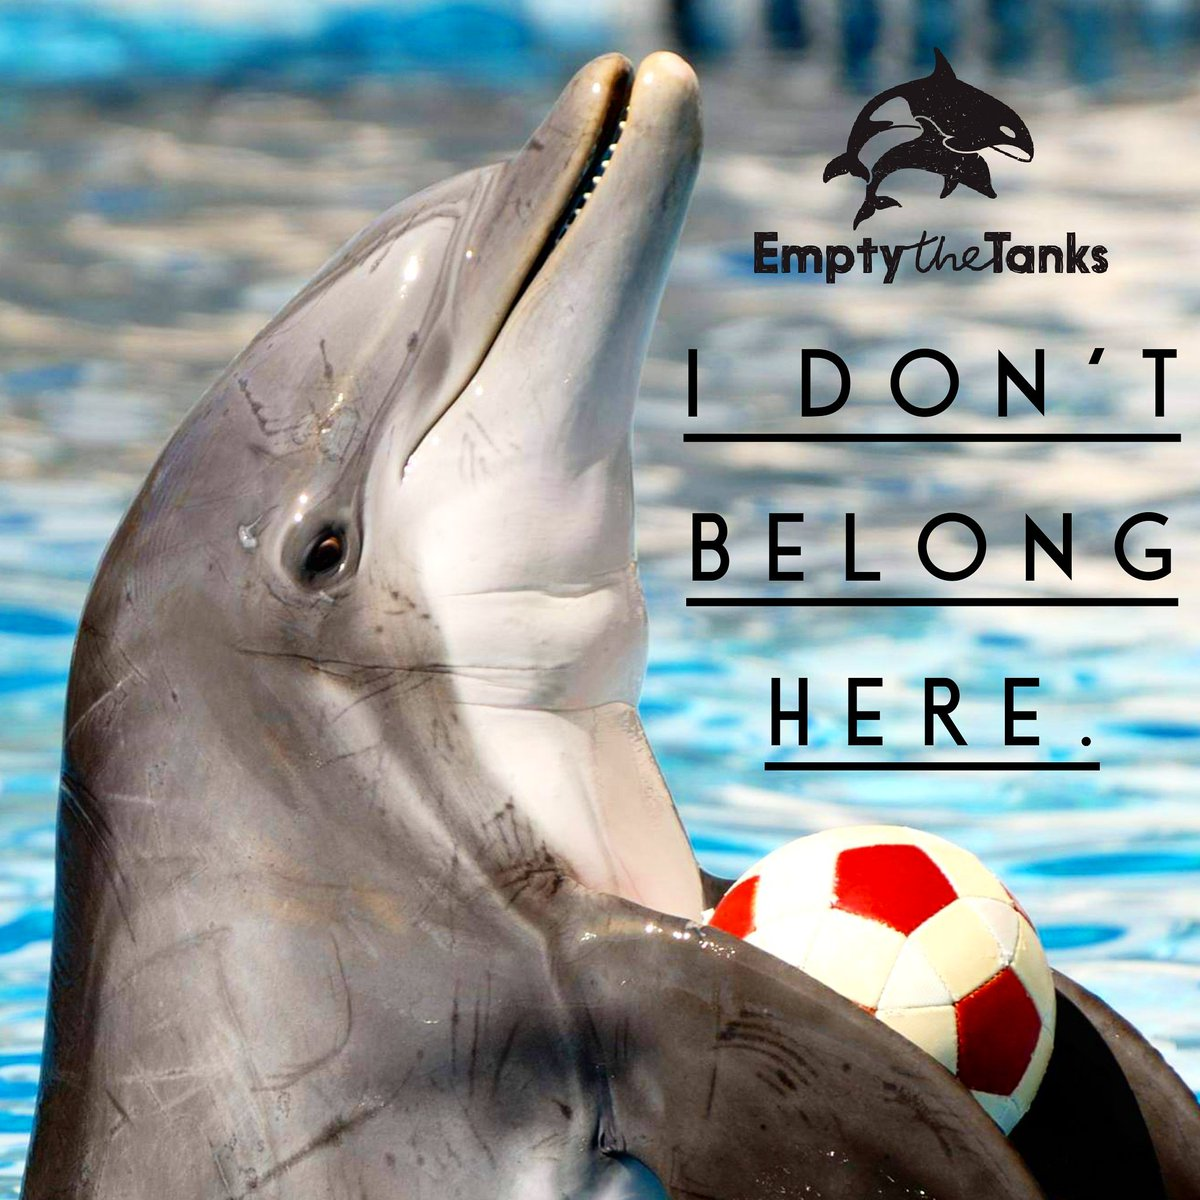 RT @Empty_the_Tanks: Be their voice. #EmptyTheTanks. https://t.co/DLIEjTsRiE